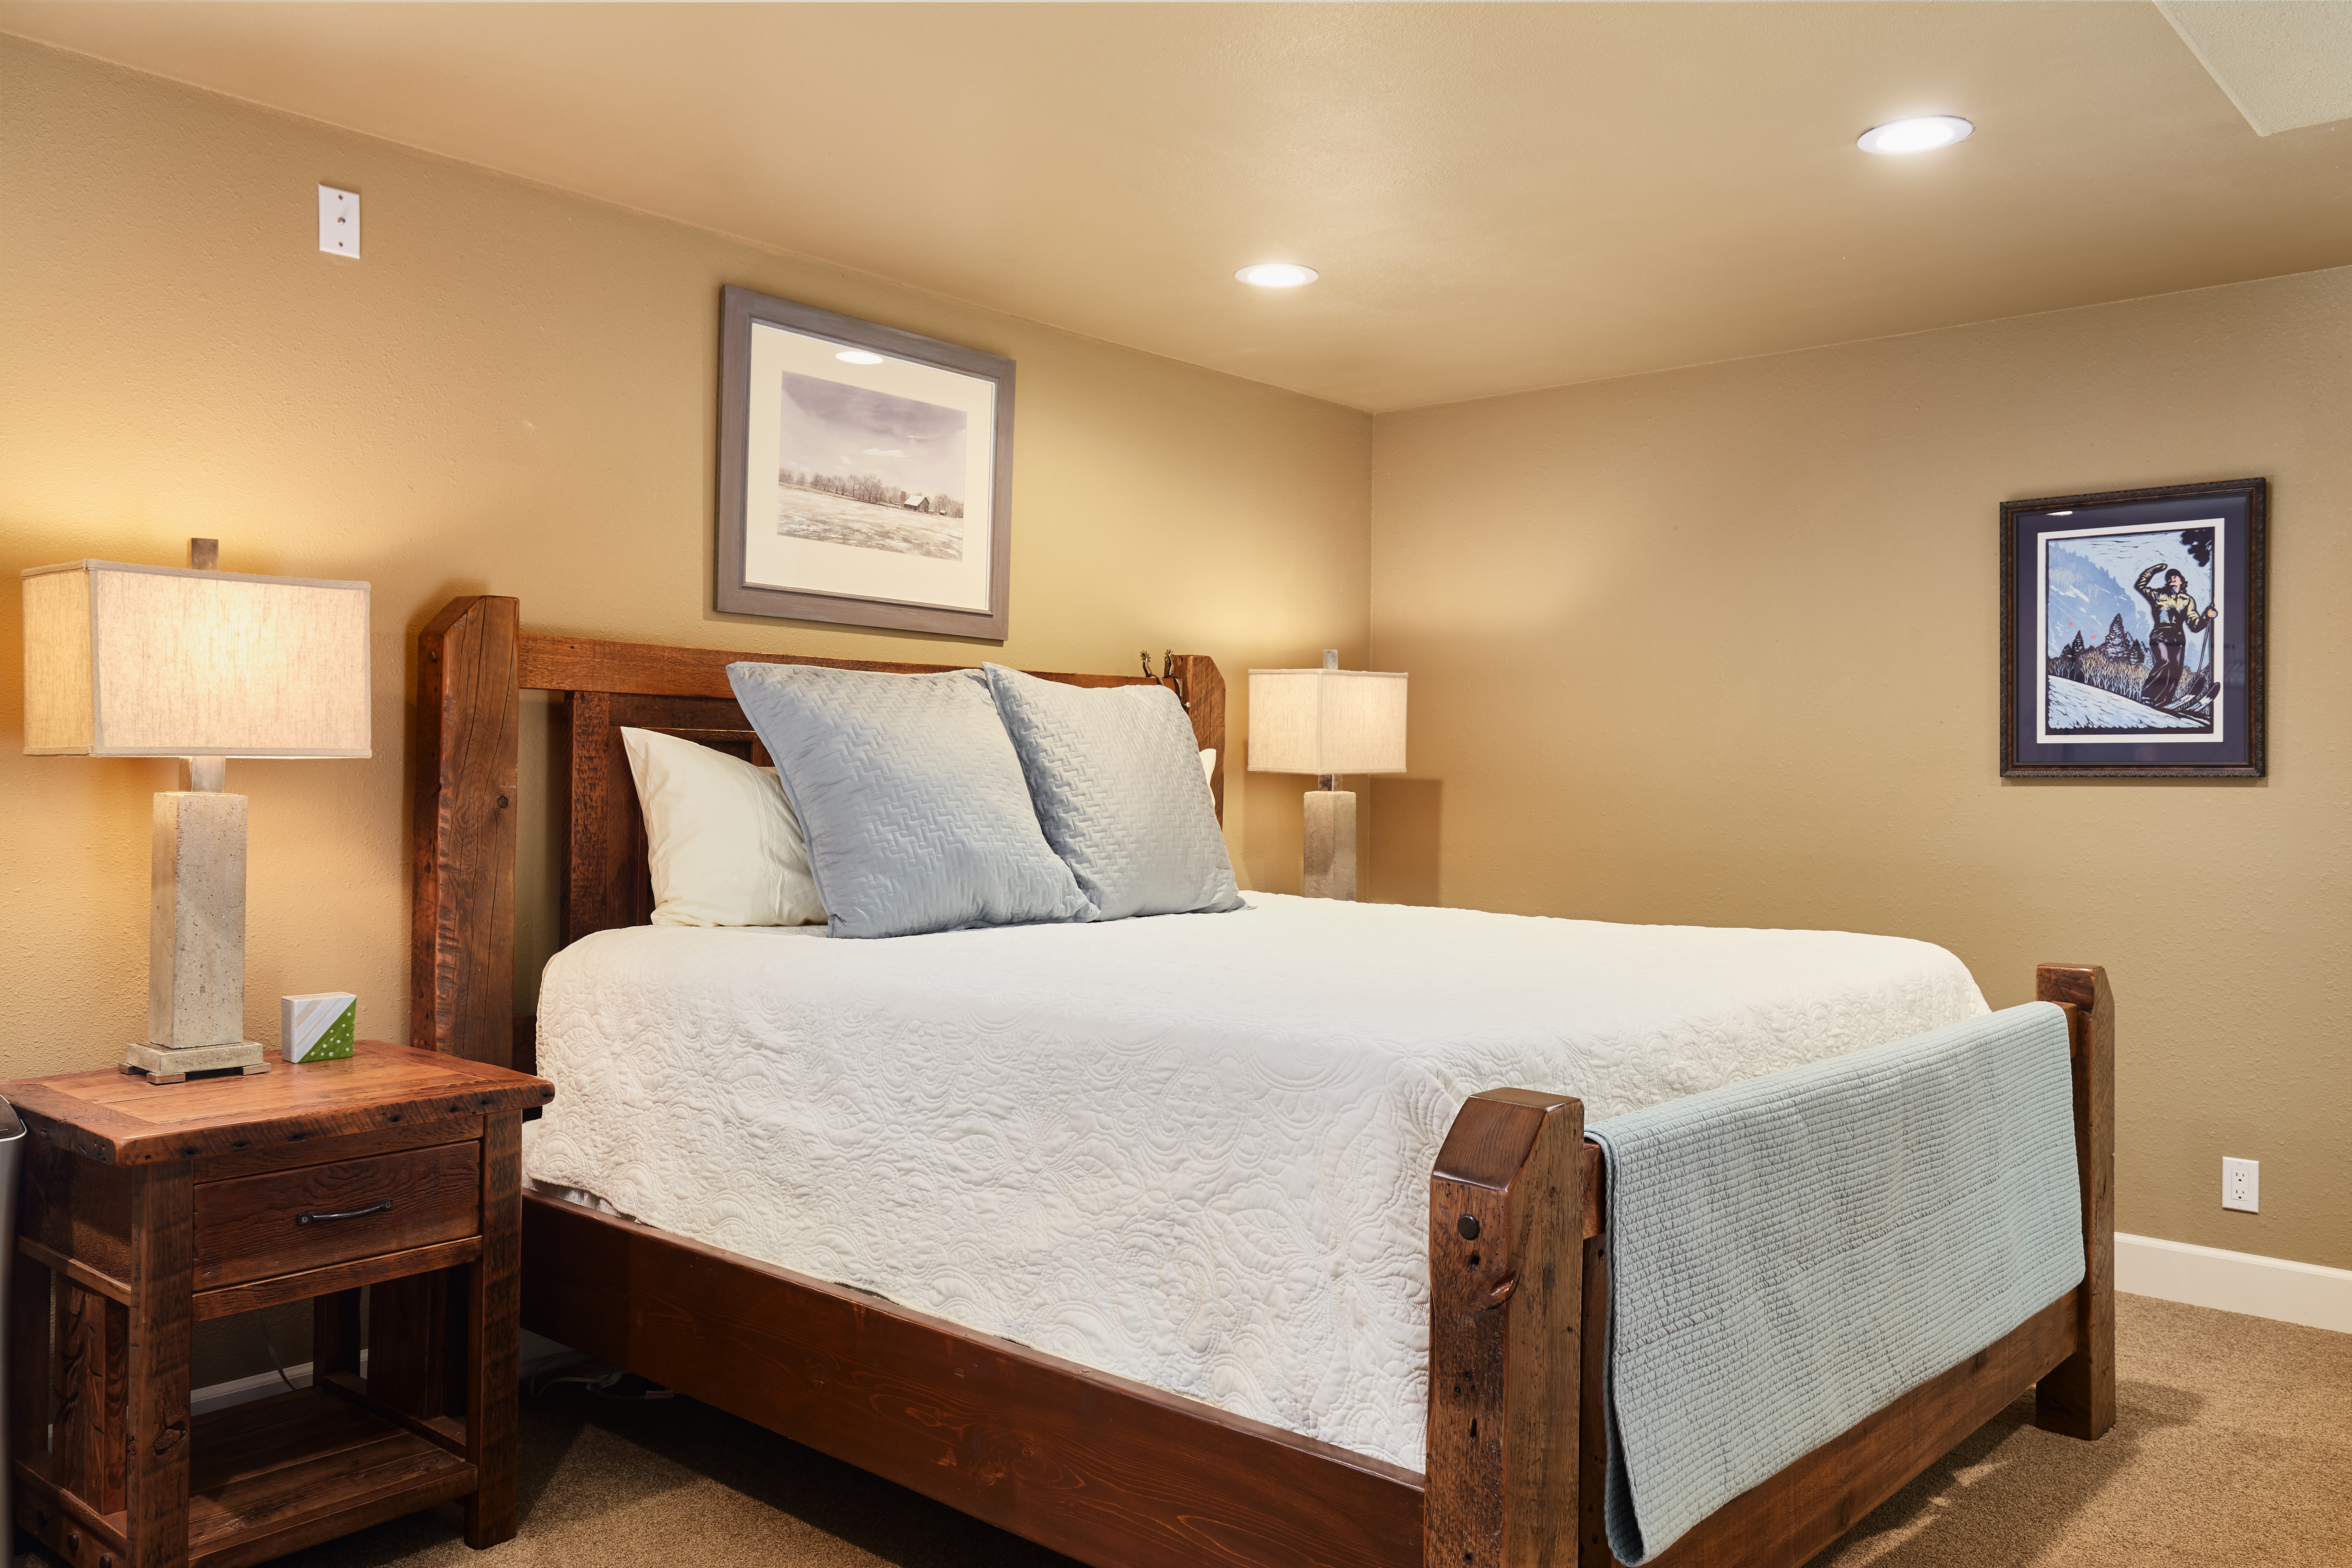 The downstairs master bedroom has a king bed and en suite bath.